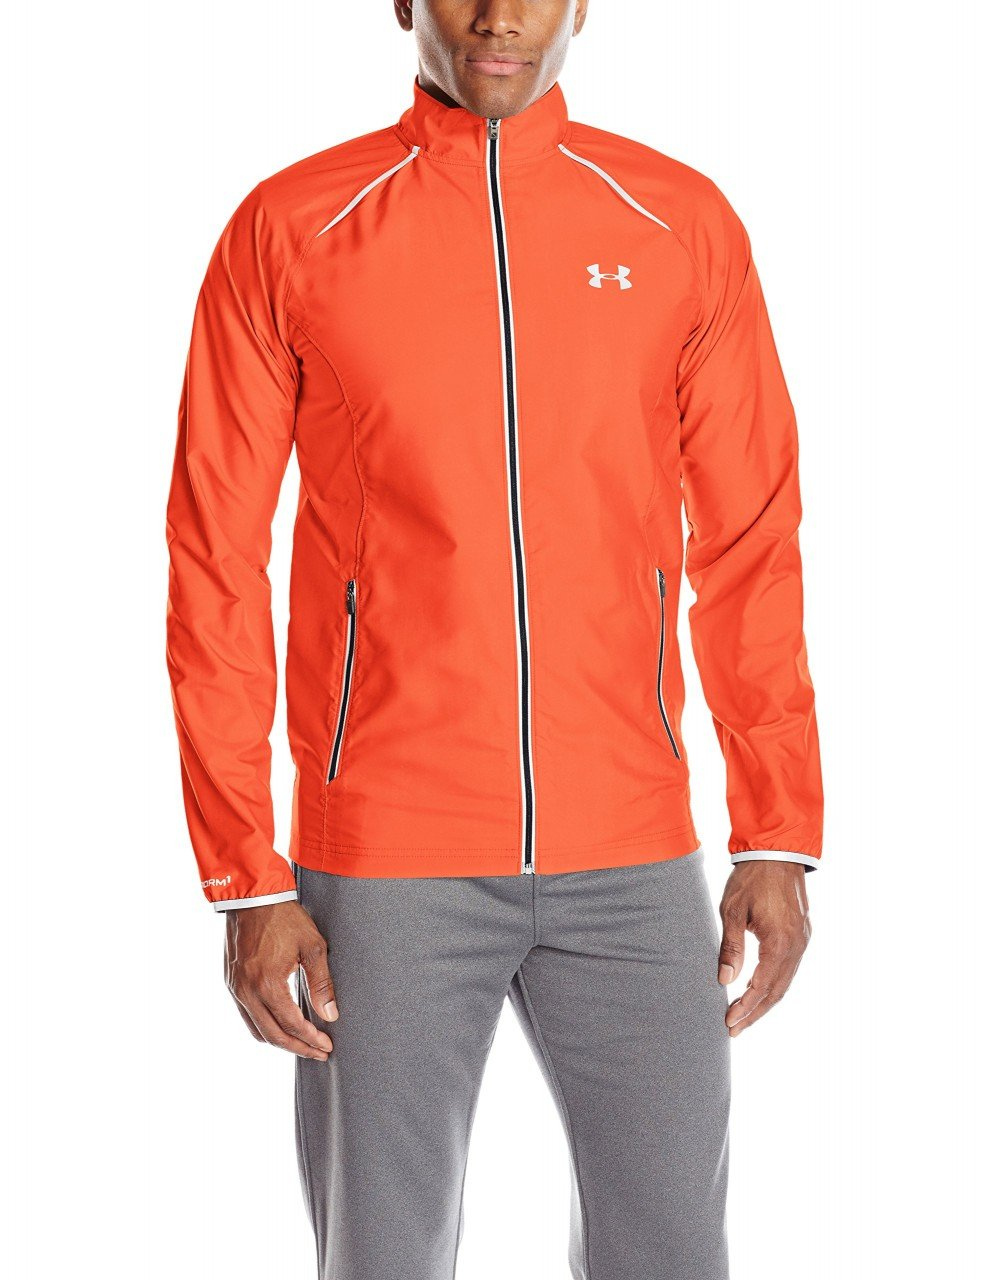 Under Armour Men's Storm Launch Run Jacket, Rocket Red (984)/Reflective, Small